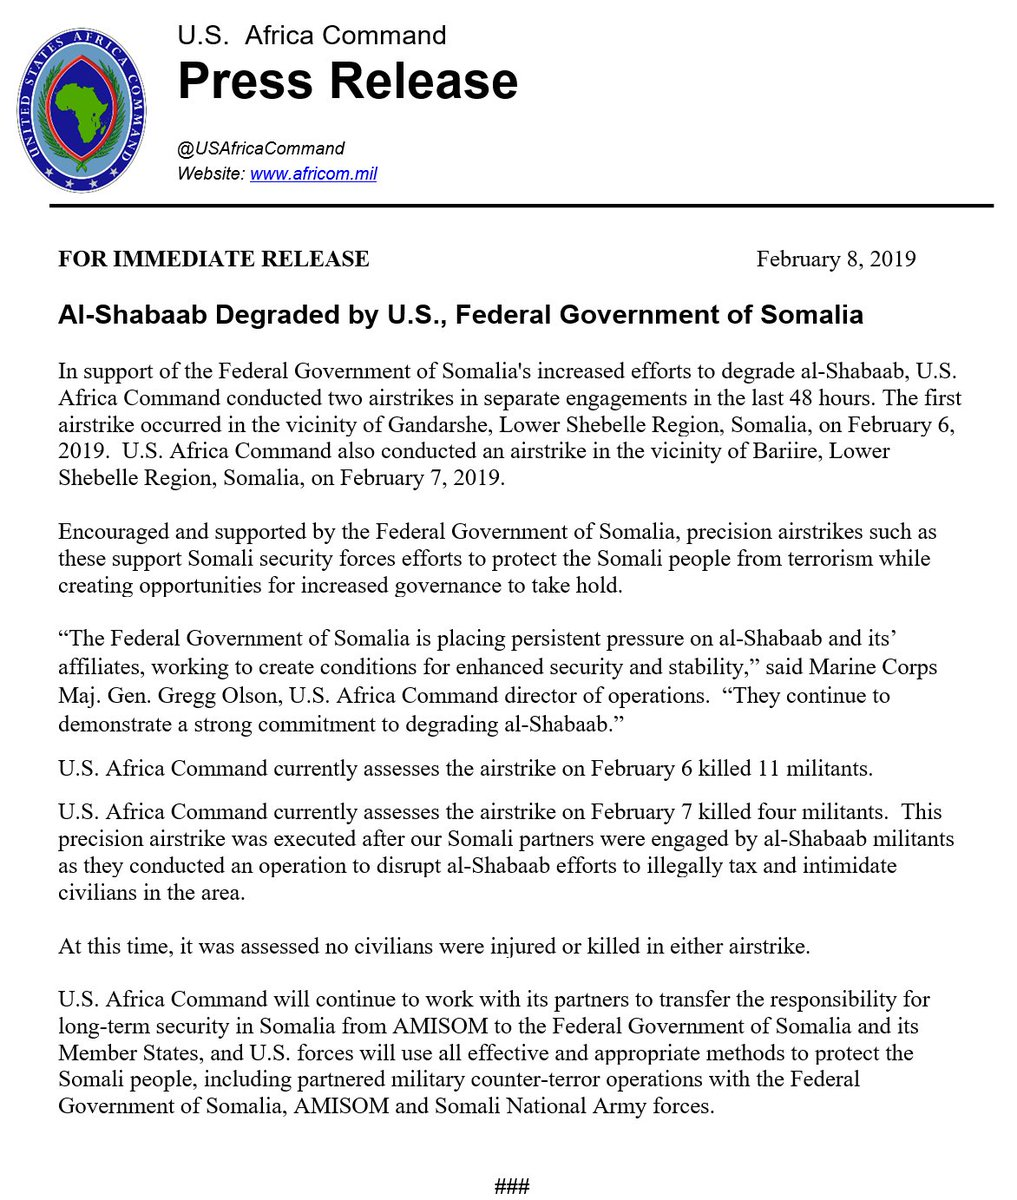 Al-Shabaab Degraded by U.S., Federal Government of Somalia - http://go.usa.gov/xERxE